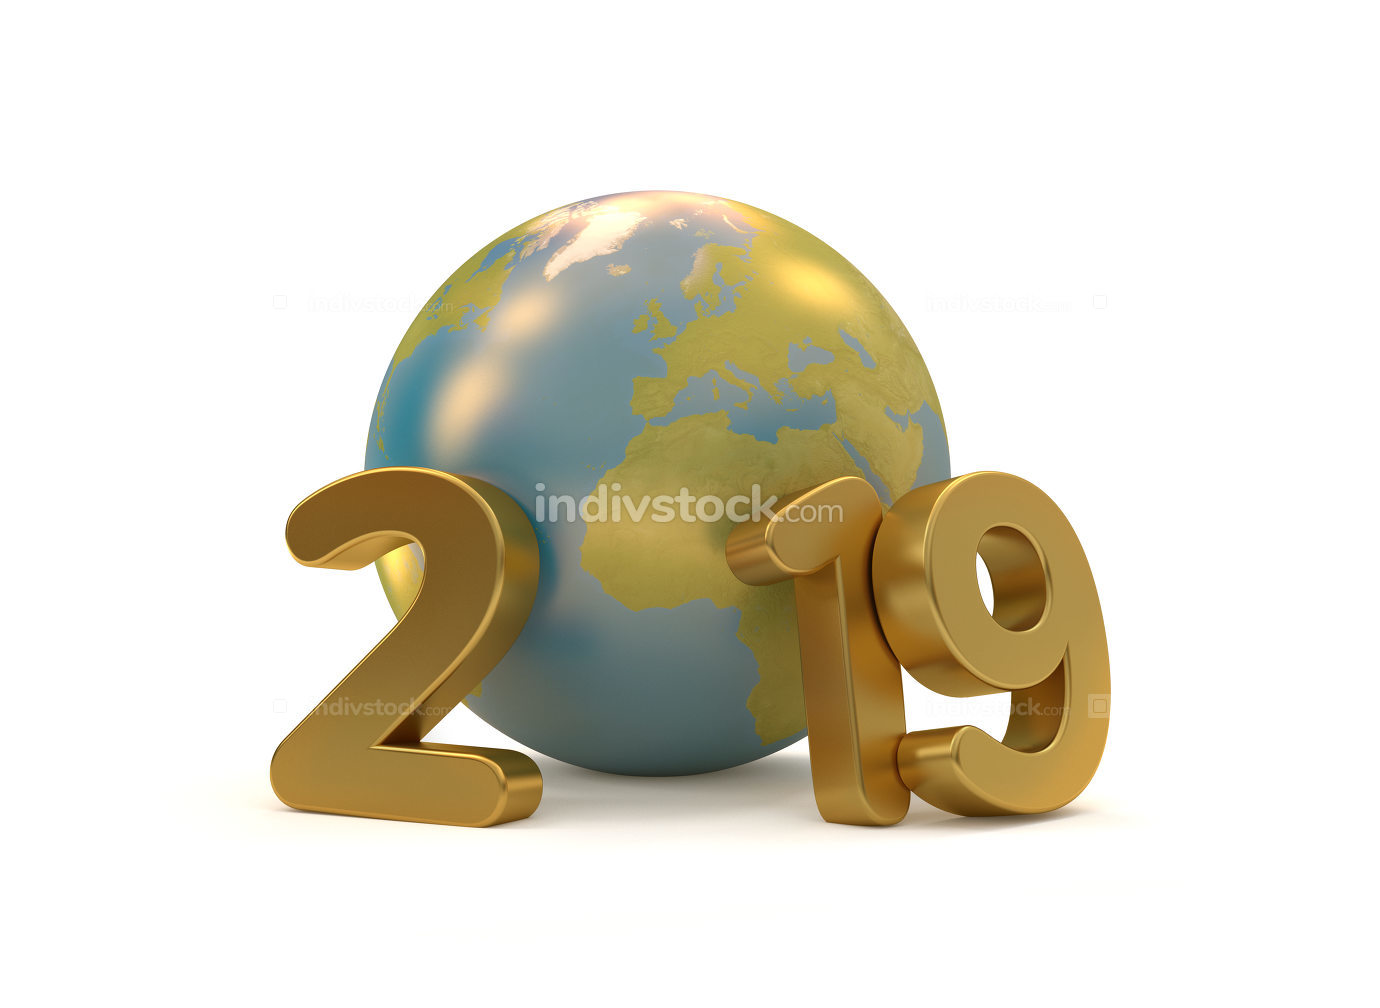 2019 multilingual for happy new year 3D-Illustration